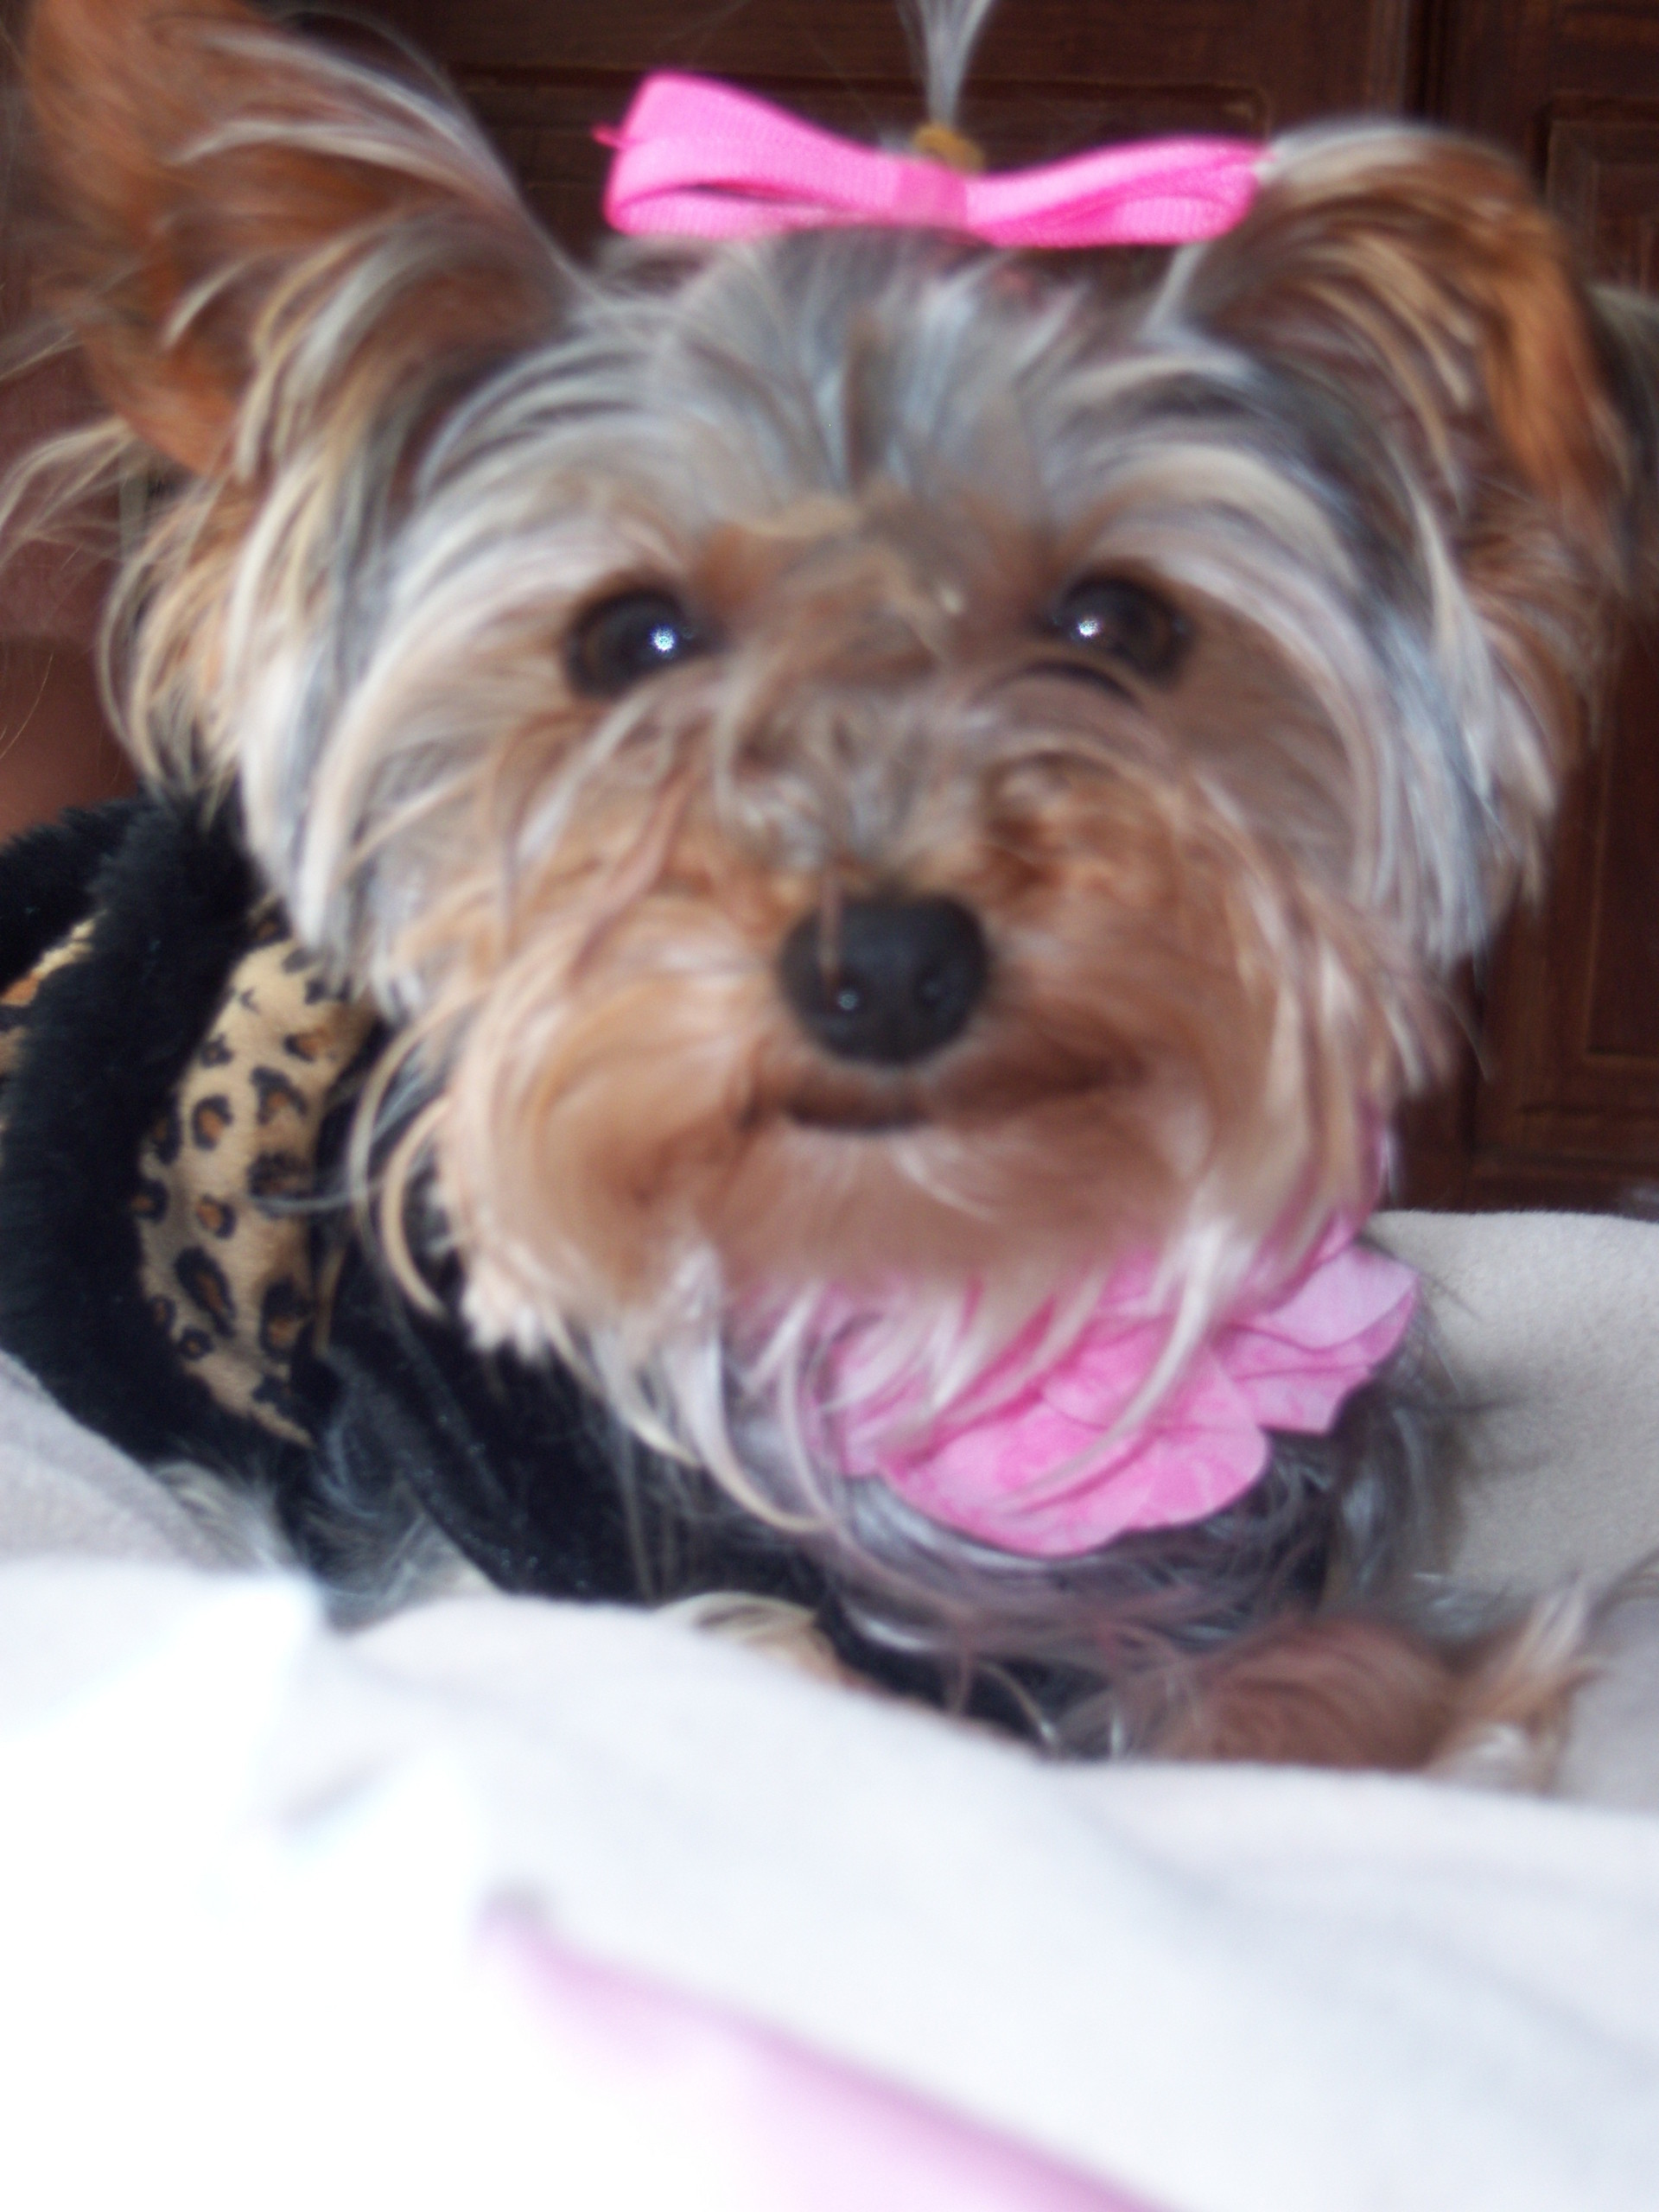 1920x2560 Yorkies images Lizzy Sue. My yorkie! HD wallpaper and background photos